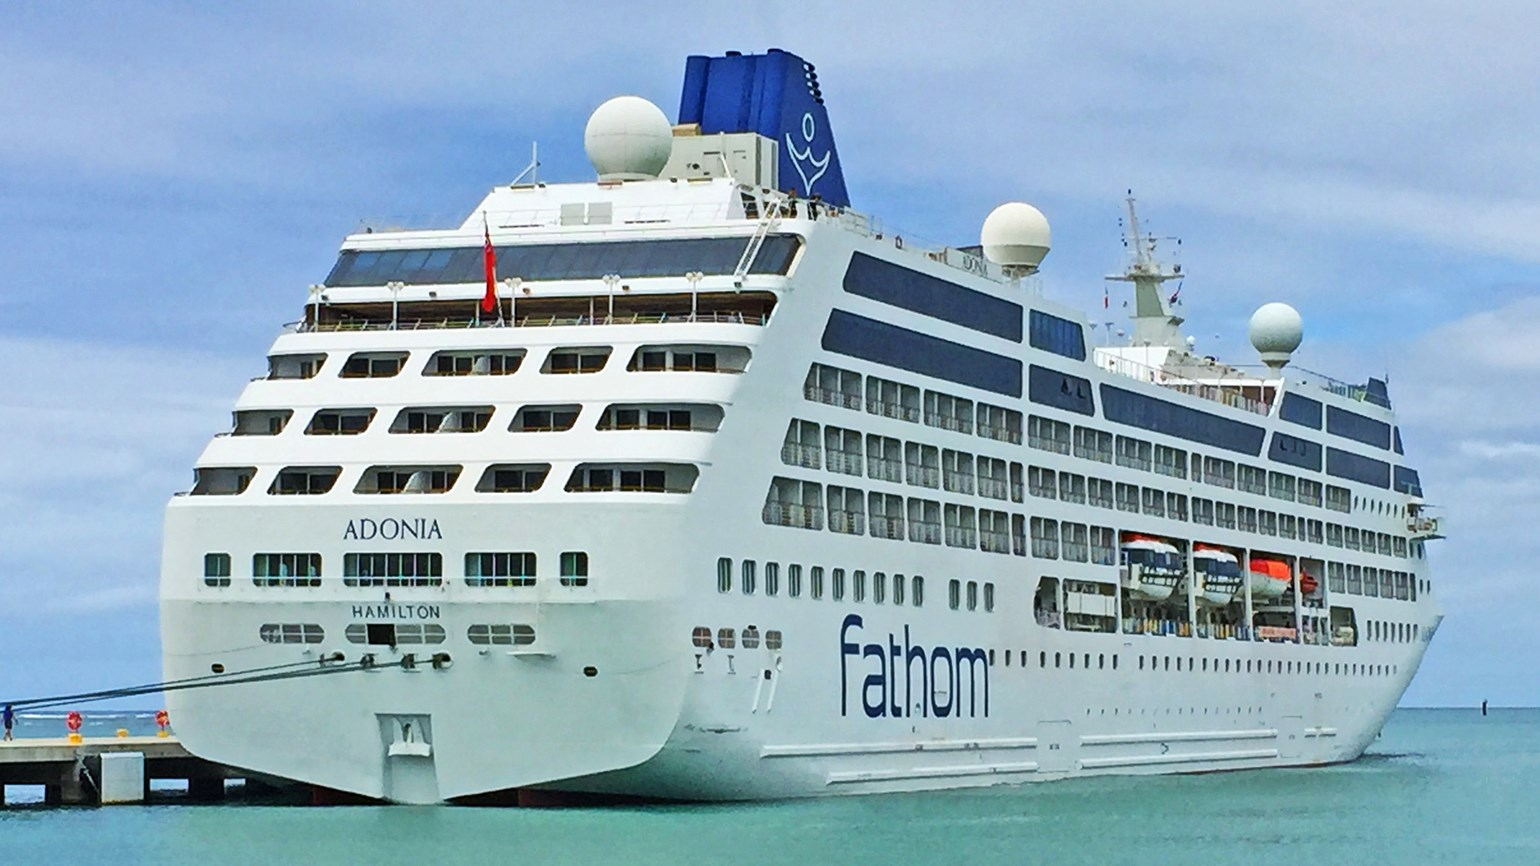 Fathom Passengers Tell Their Stories Travel Weekly - Cruise ship stories